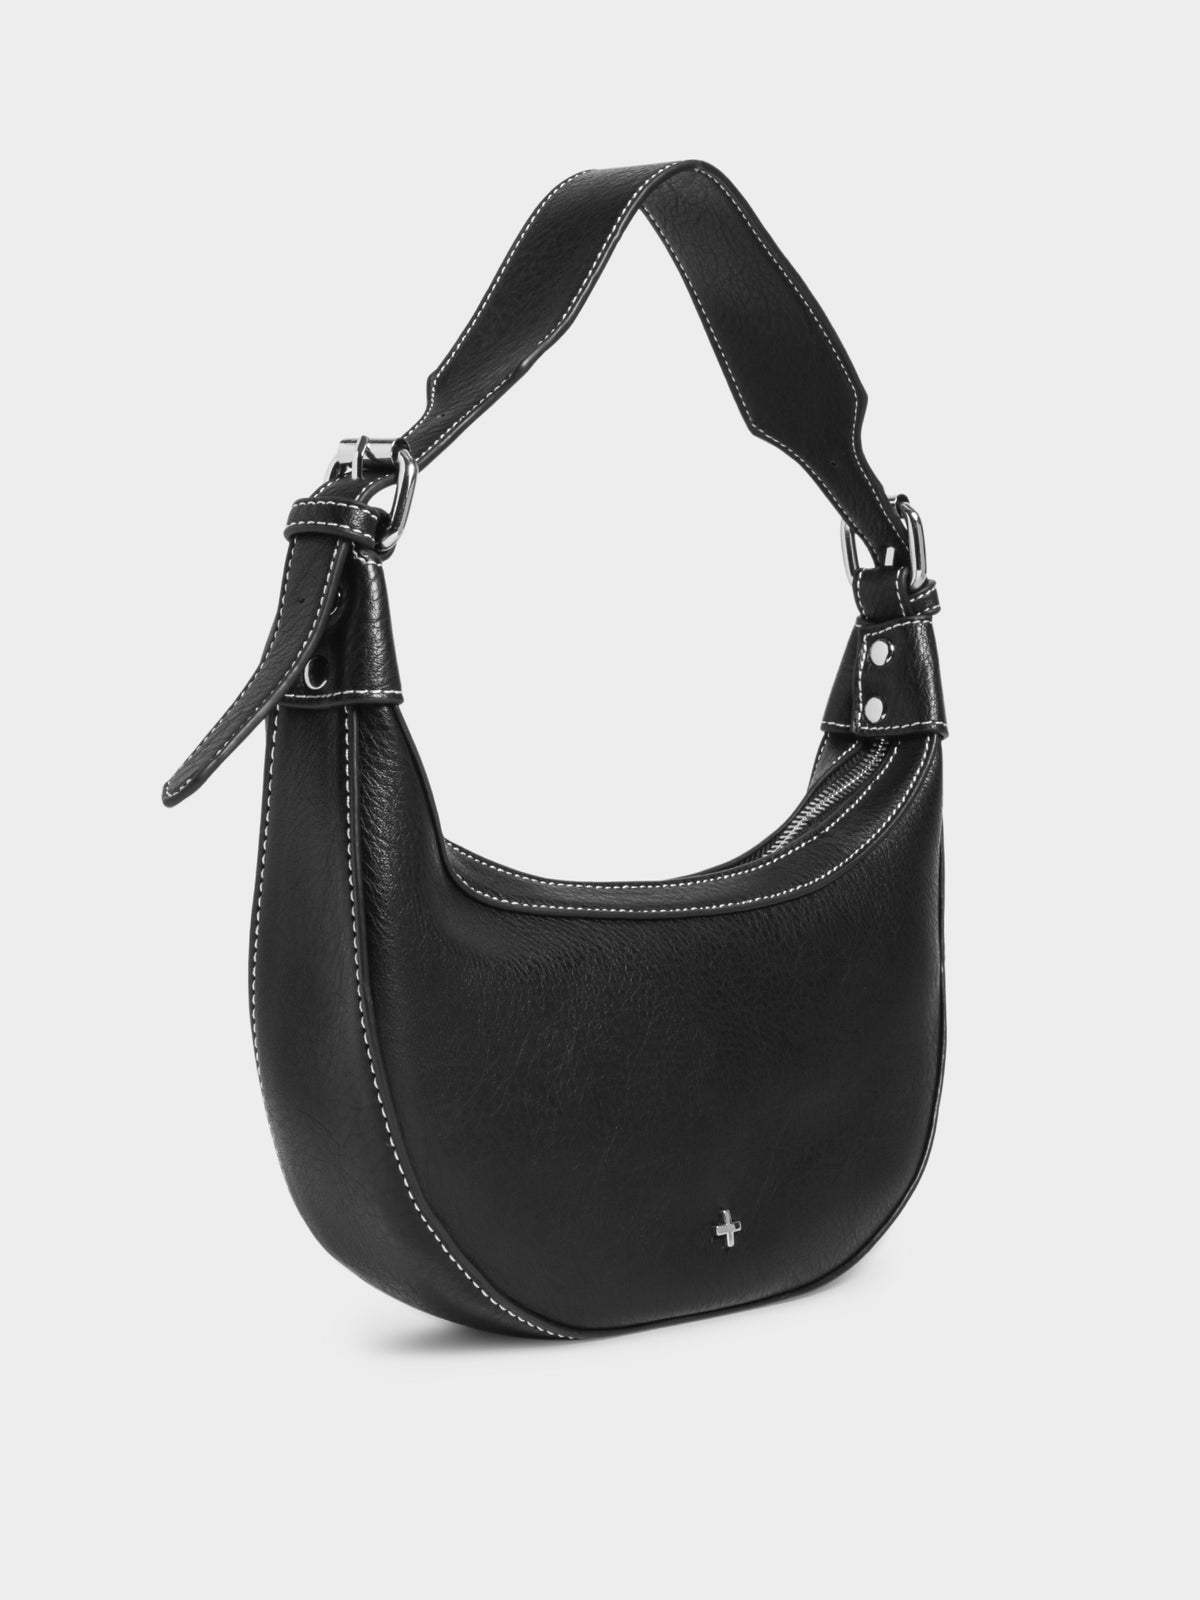 Kaley Hobo Handbag in Black